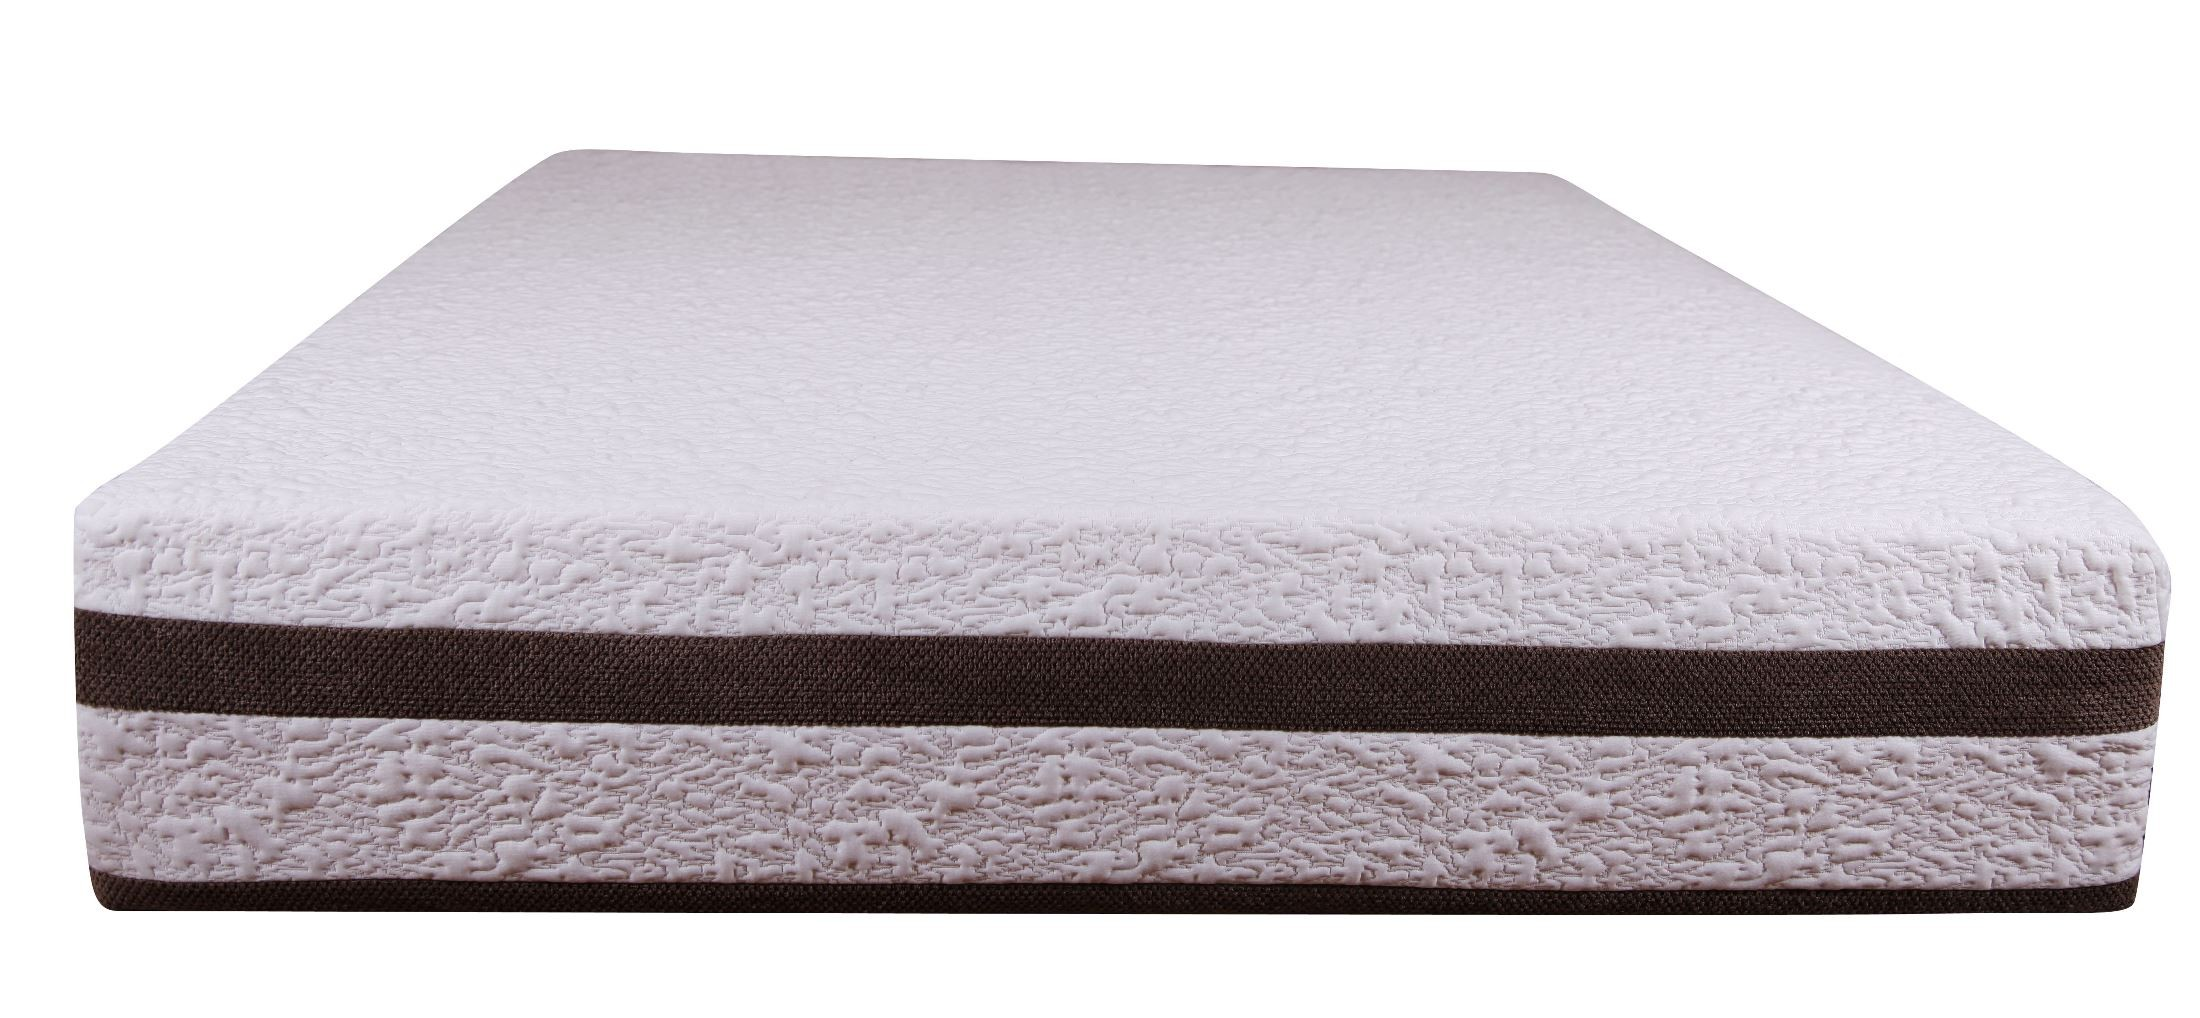 Nova 11 5 Memory Foam Cal King Size Mattress From Klaussner Novacakkmat Coleman Furniture